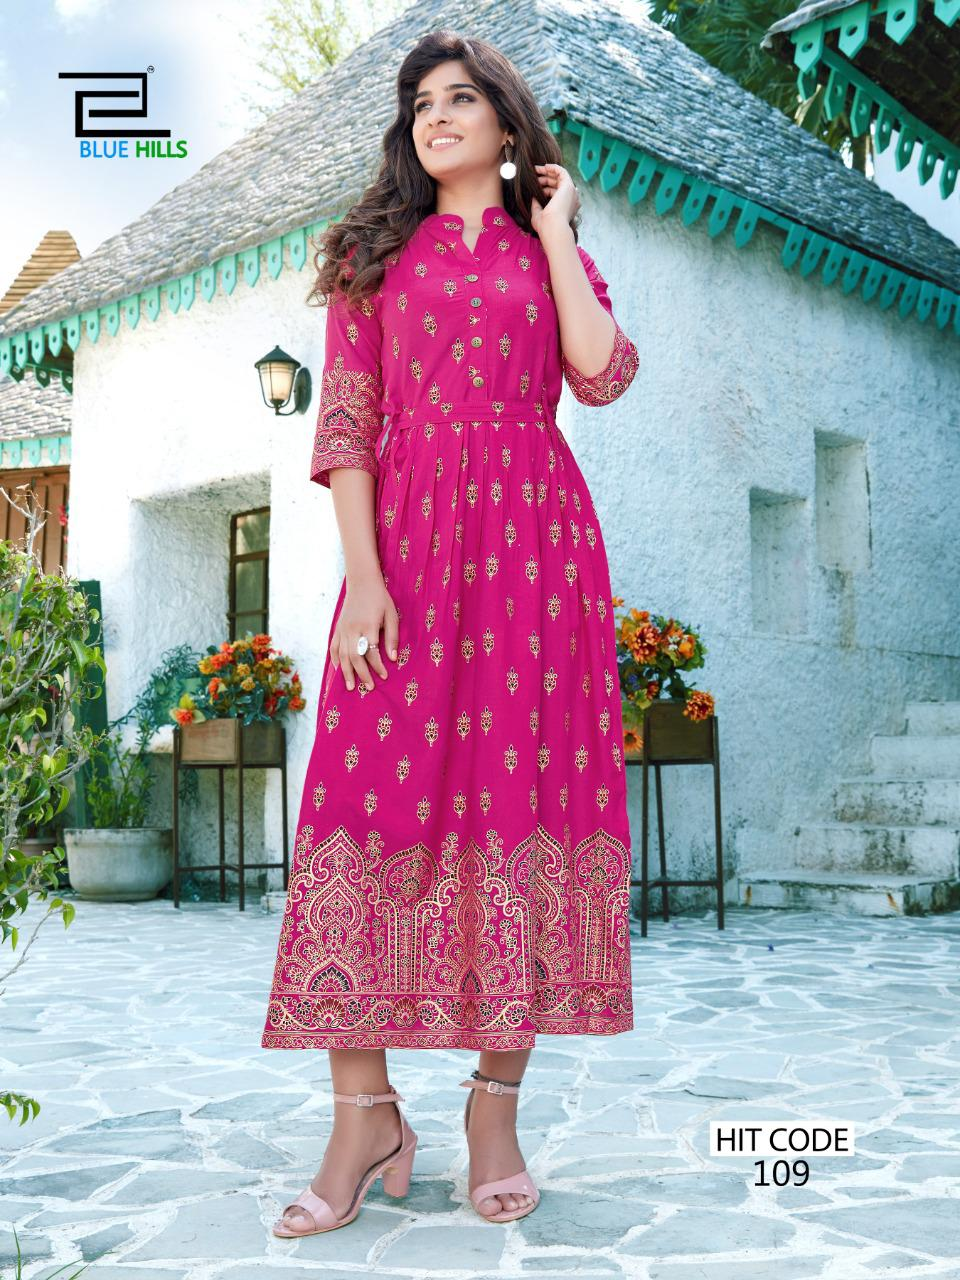 Blue Hills Walkway Hit Kurti Wholesale Catalog 10 Pcs 10 - Blue Hills Walkway Hit Kurti Wholesale Catalog 10 Pcs